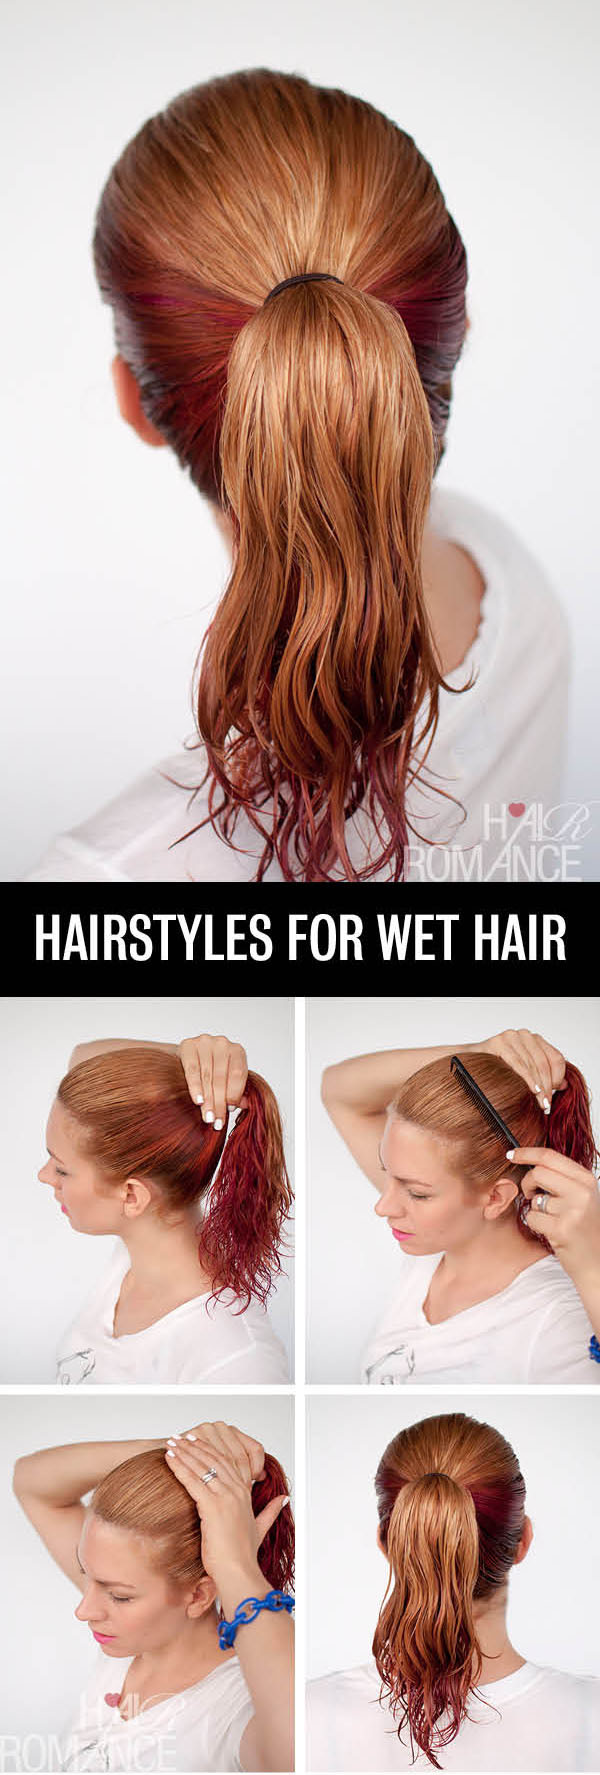 Best ideas about Easy Hairstyles For Wet Hair . Save or Pin ピンク·オレンジジュース GET READY FAST WITH 7 EASY HAIRSTYLE Now.